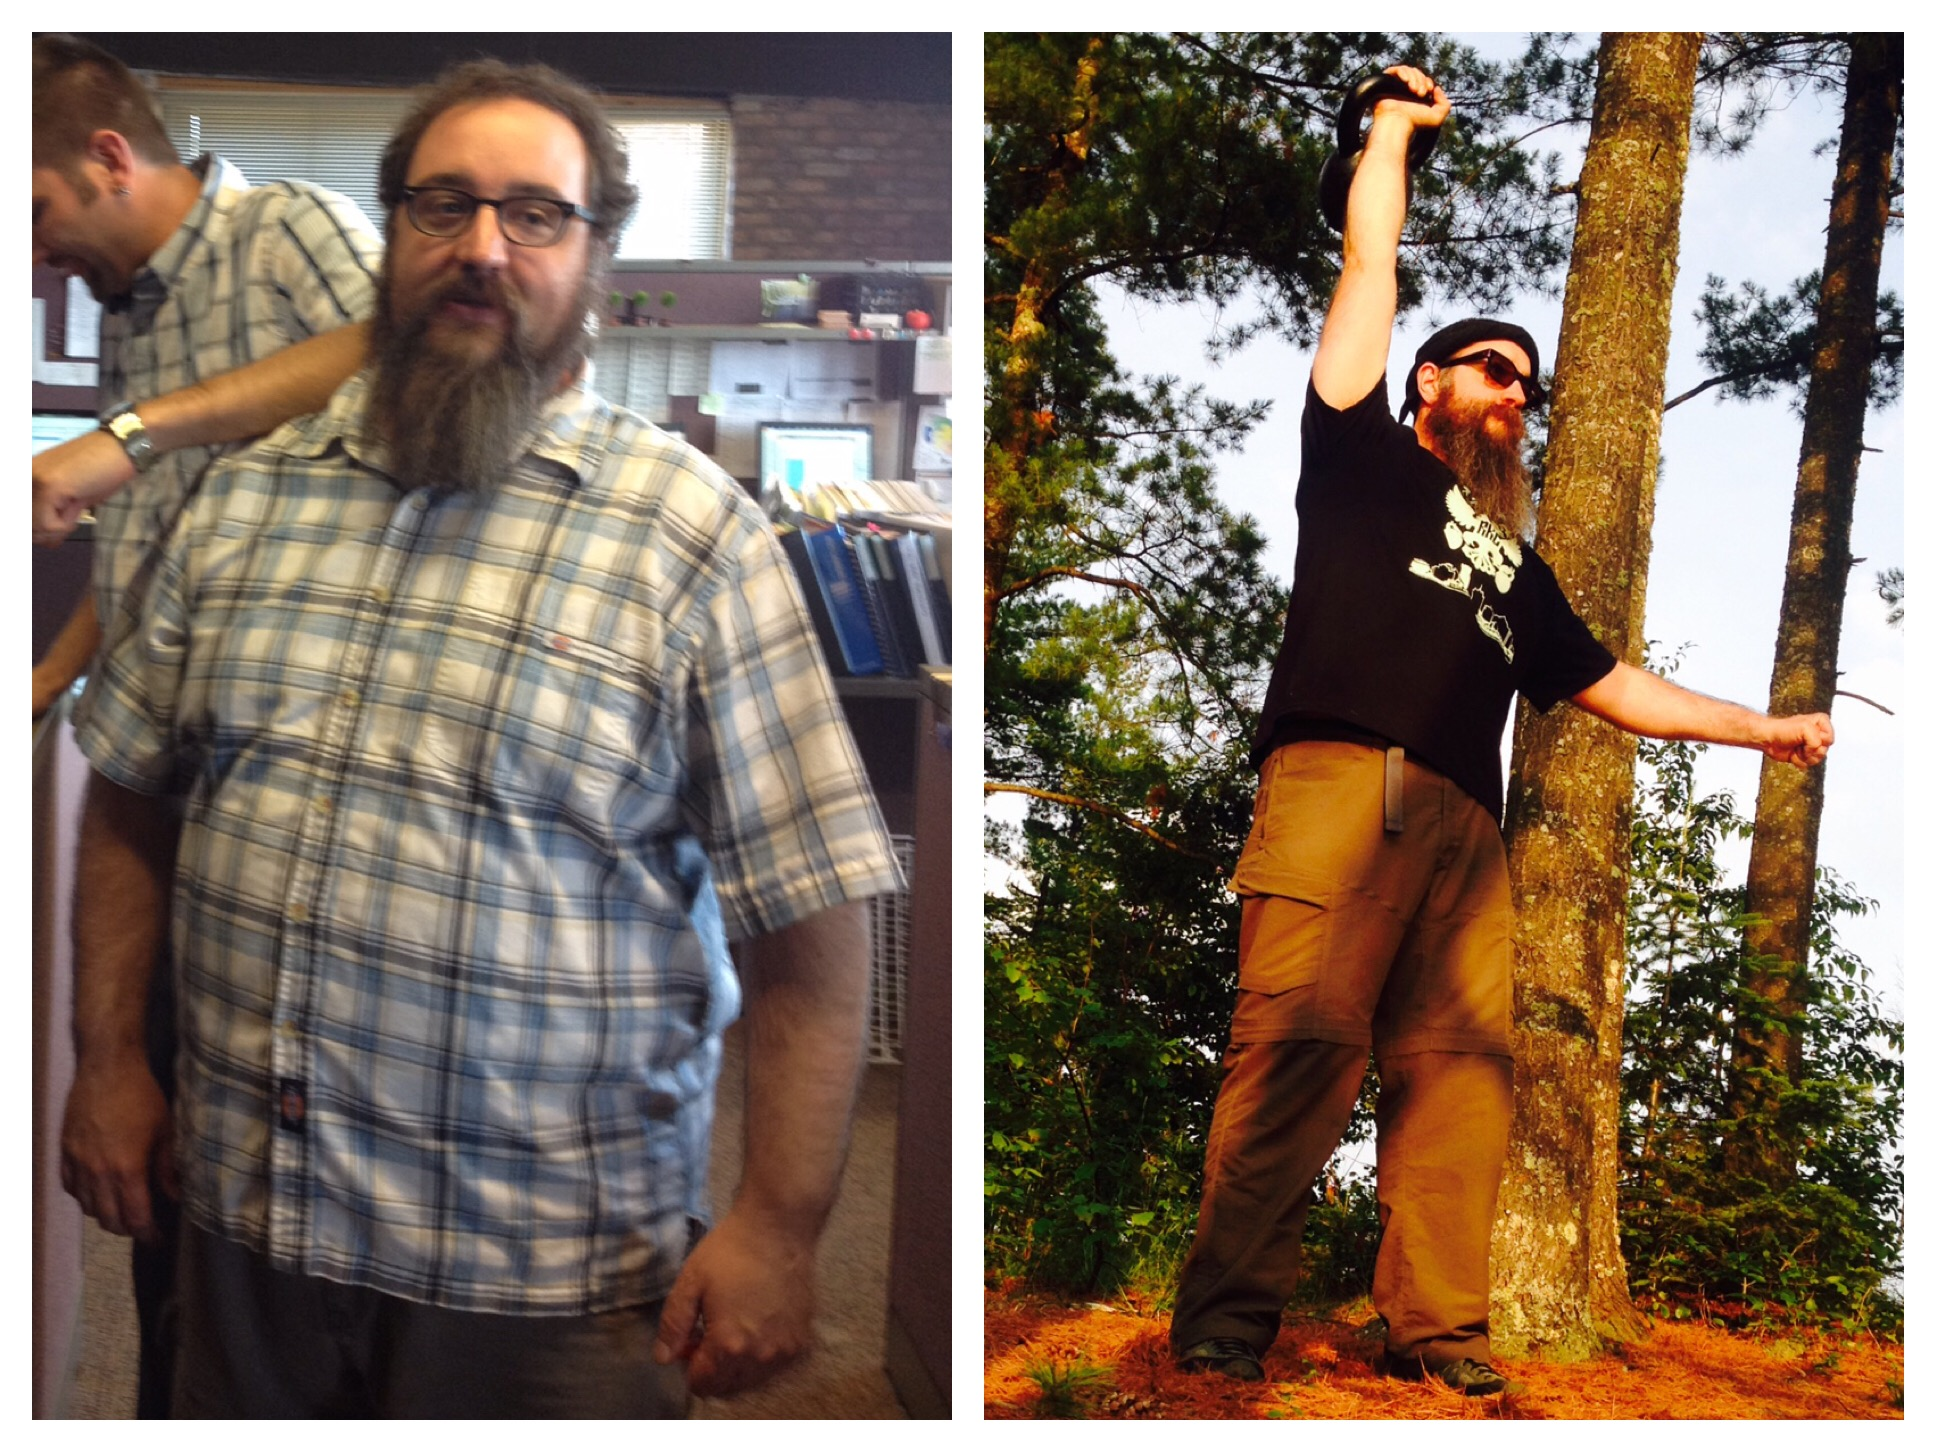 Then + Now: ~100 pounds lost and real happiness found.  Beardy keeps it real in the office by incorporating movement into his workday so that weekends and holidays are all about the adventures!